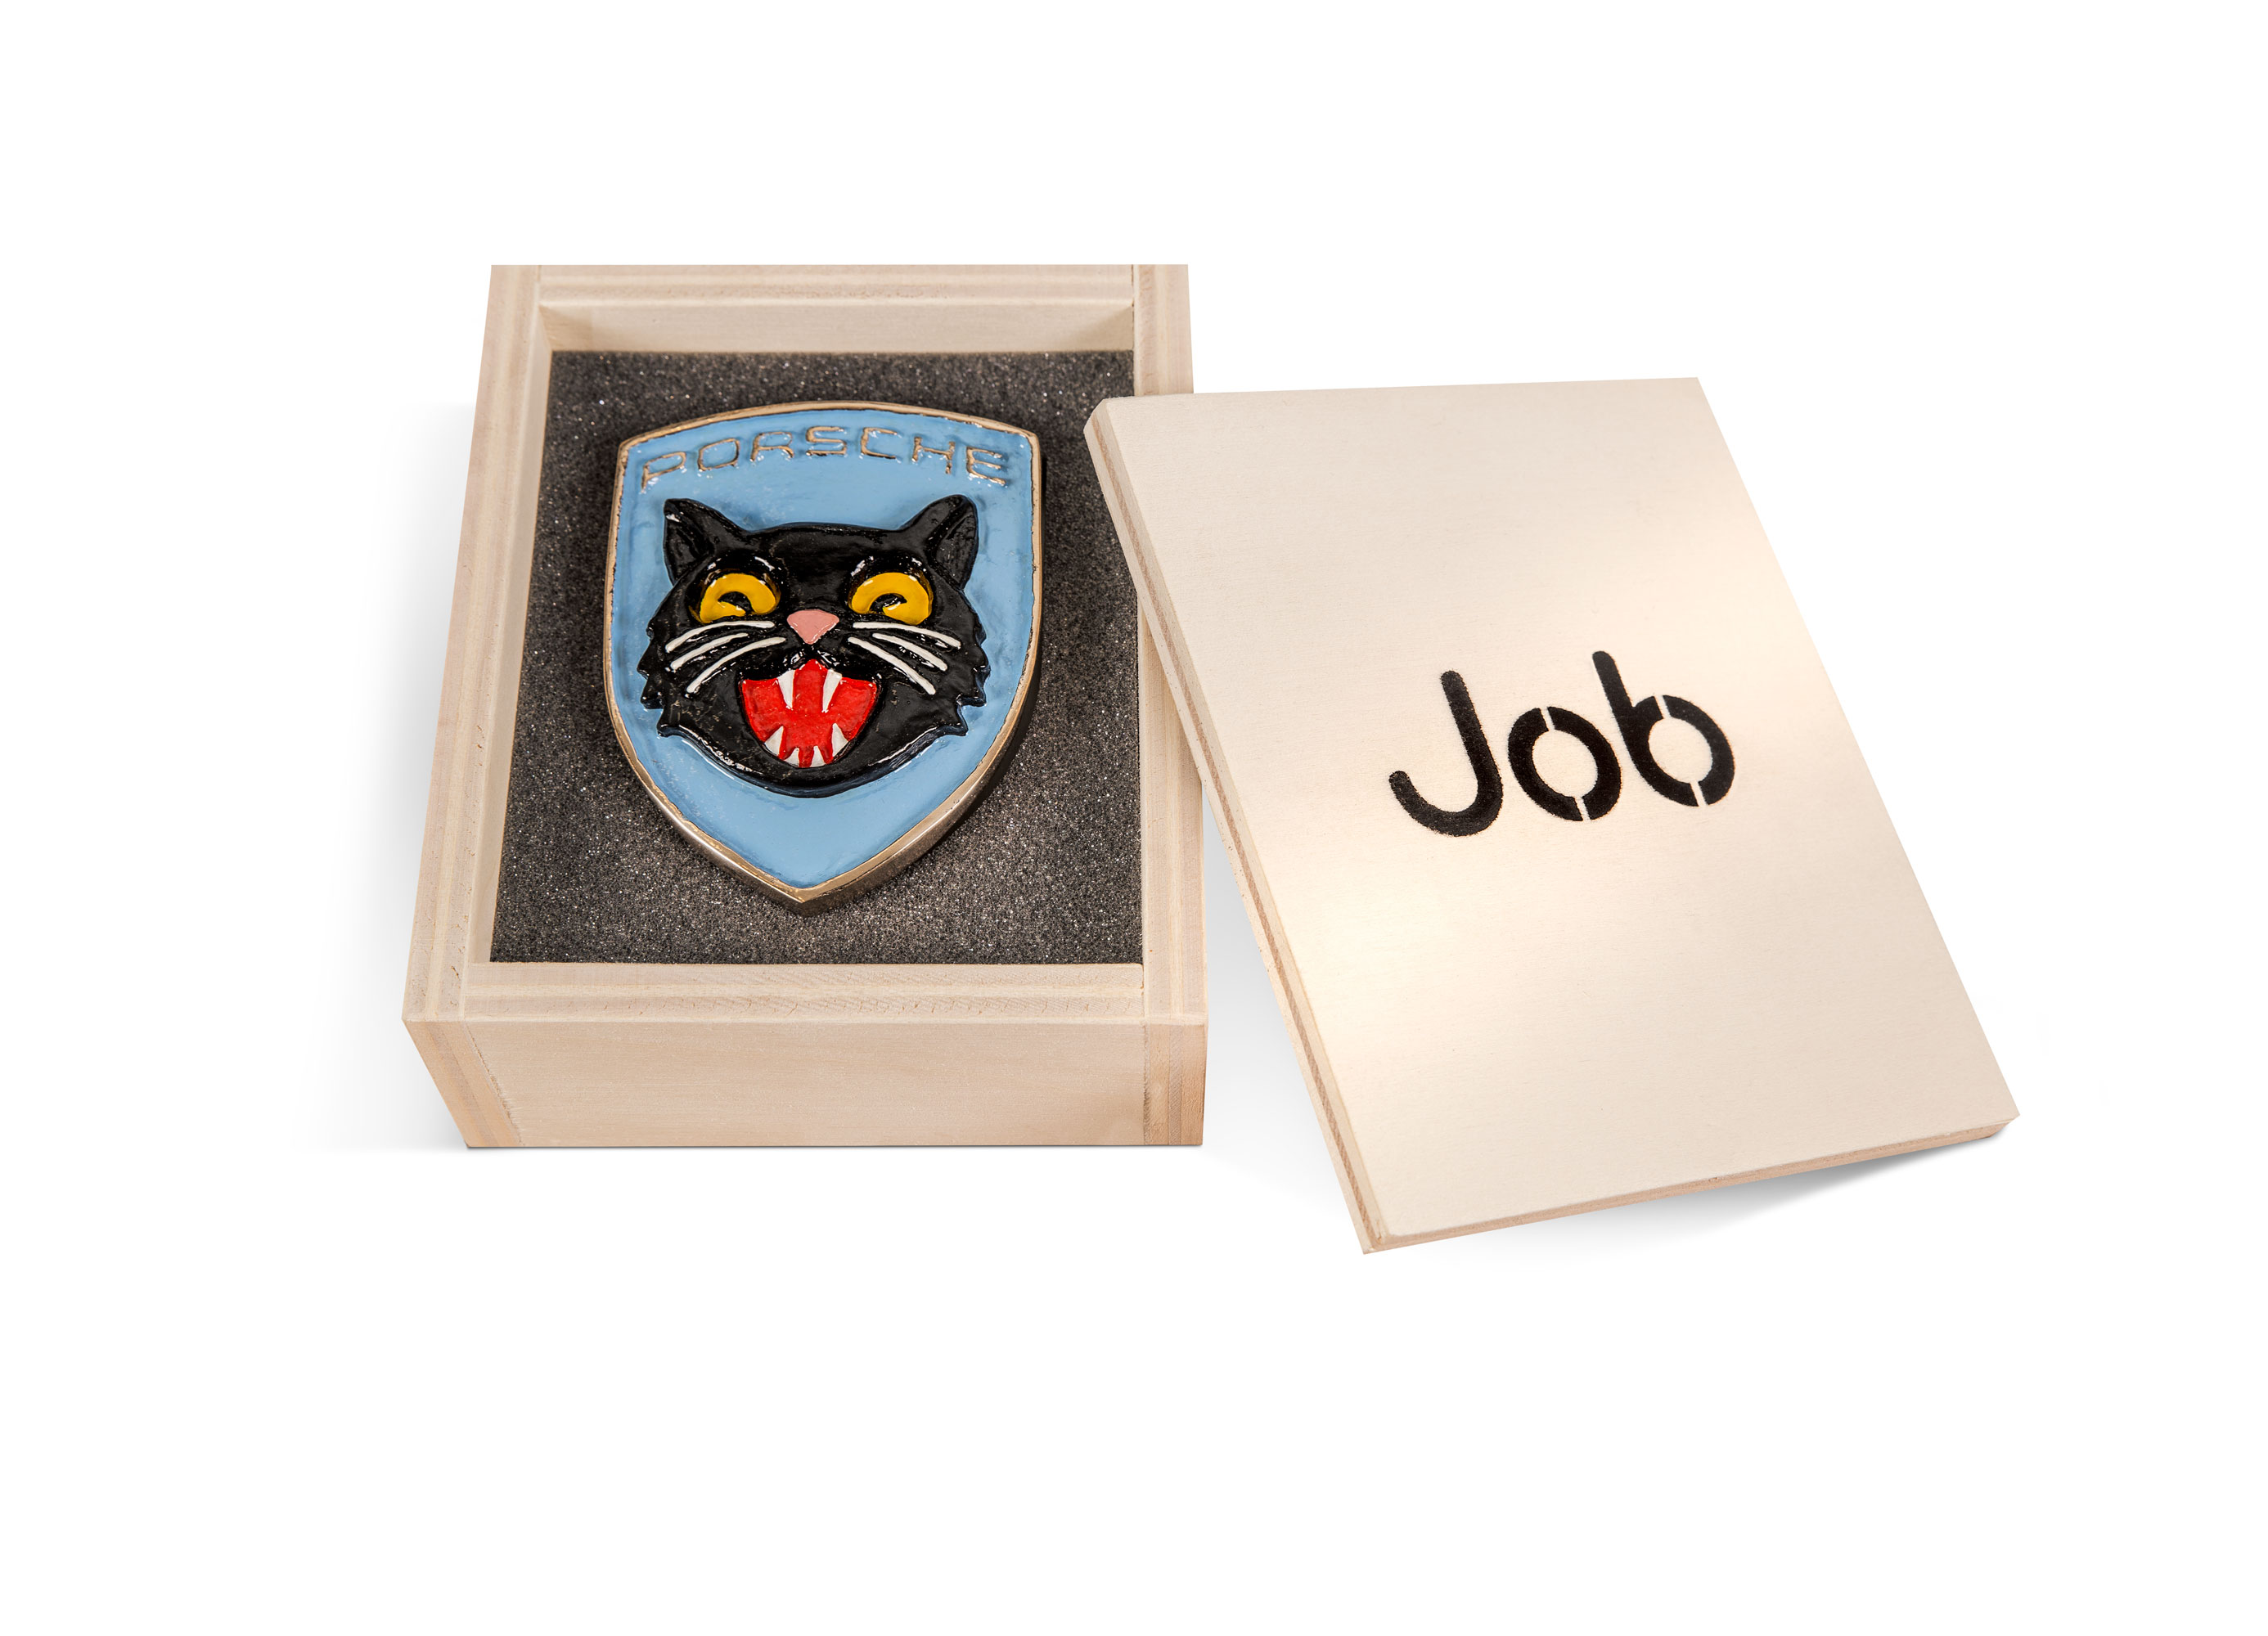 studio-job-Porsche-Cat-Logo-2-2019